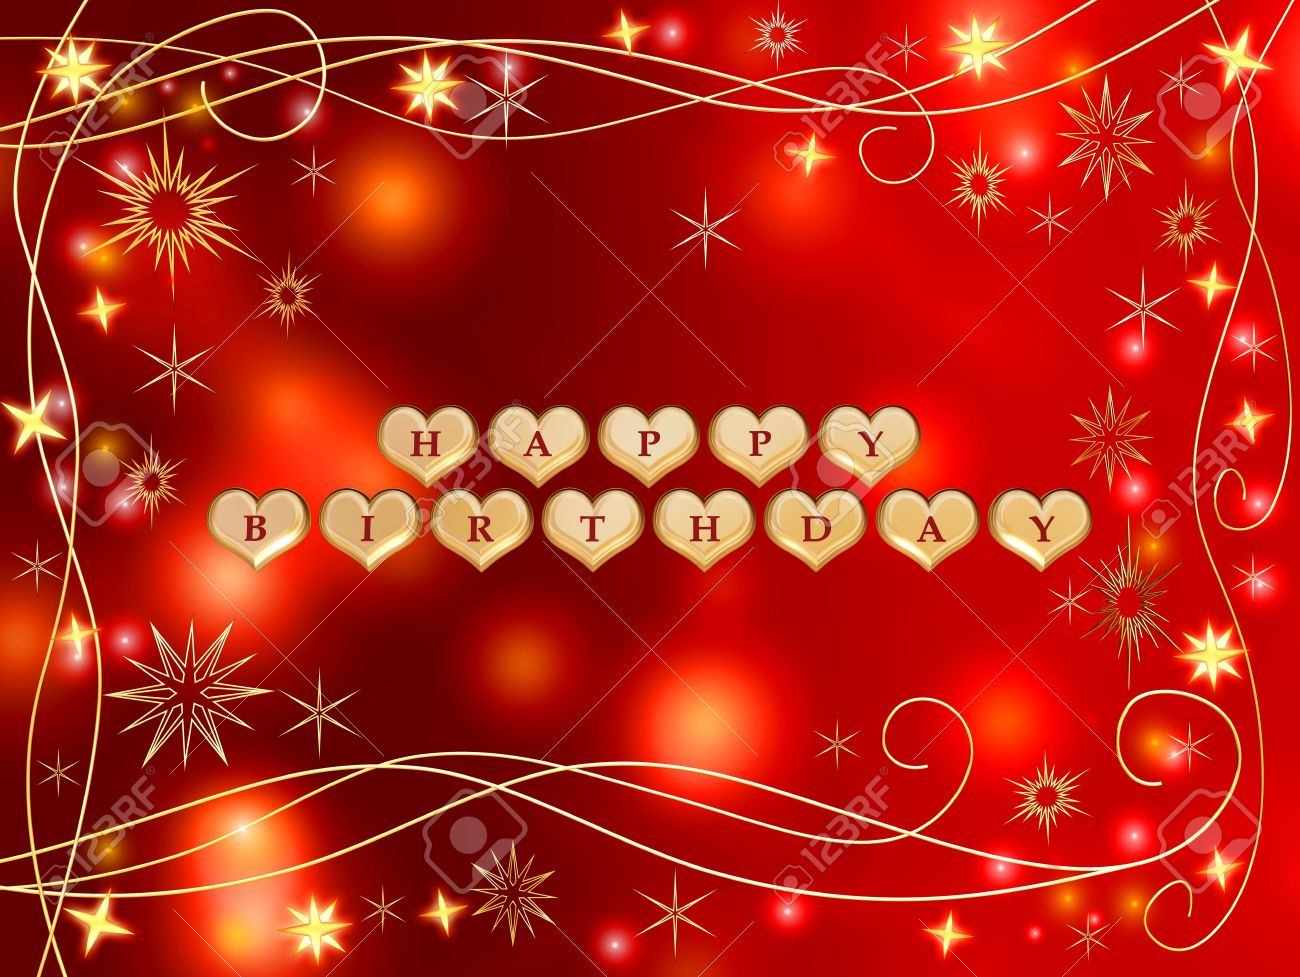 3d golden hearts, red letters, text - happy birthday, stars Stock Photo - 2580031